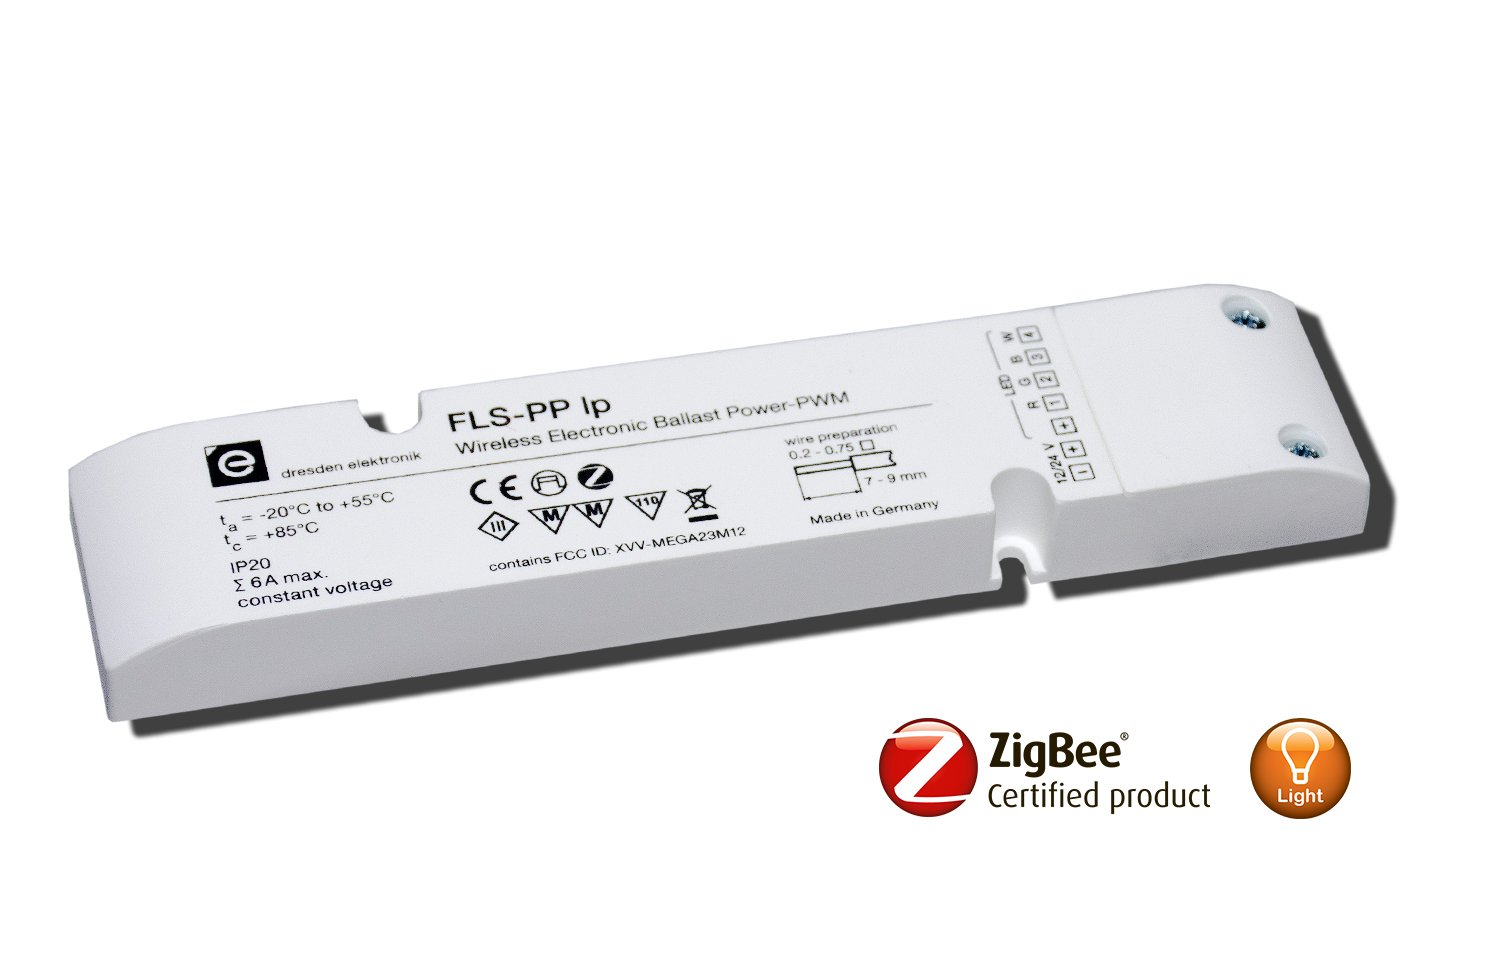 Wireless electronic ballast FLS-PP lp with Power PWM interface for RGBW and RGB lights (12/24V LED/LED stripes), ZigBee certified product